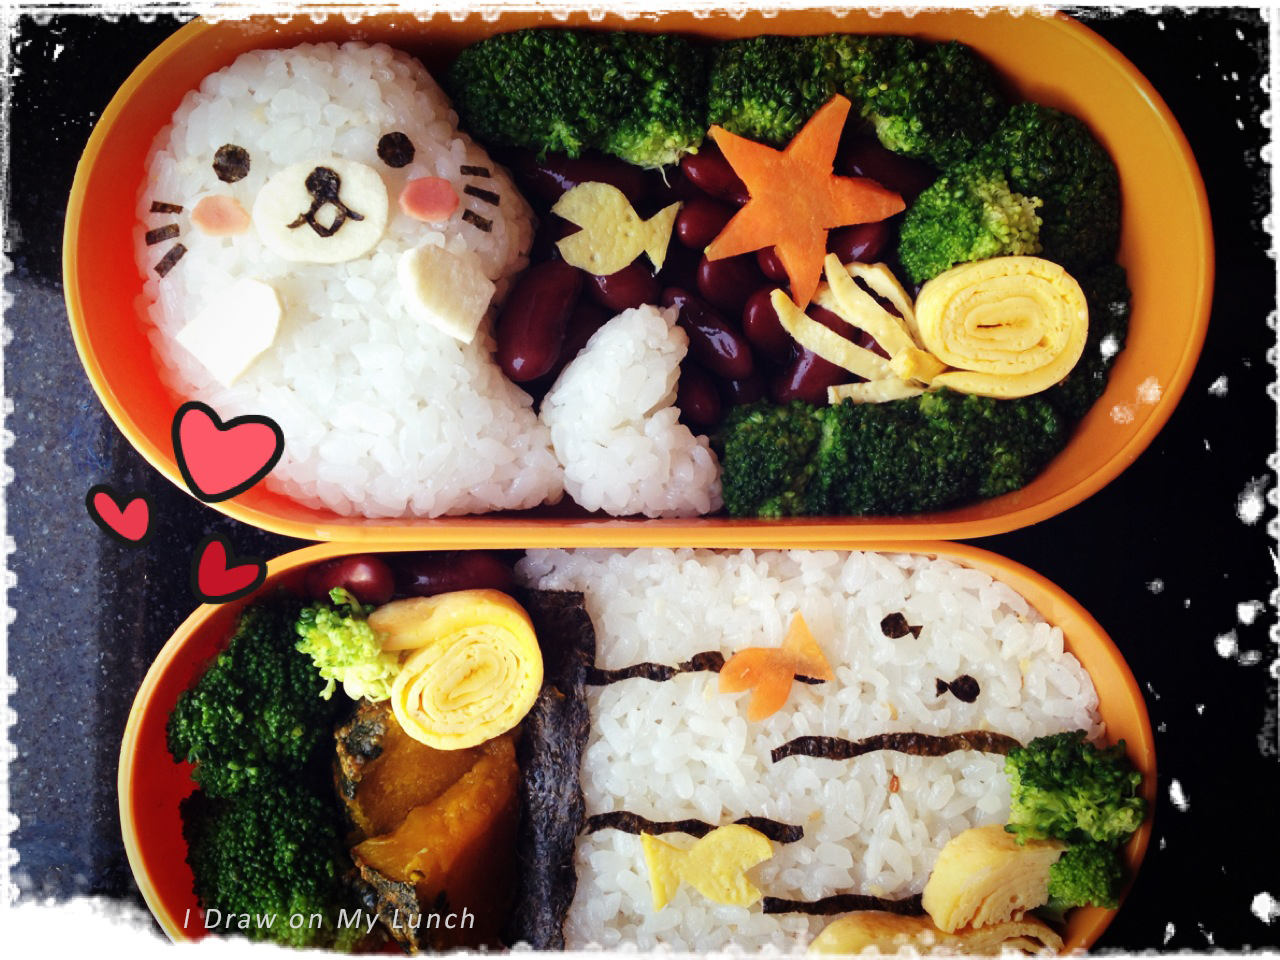 Baby Seal lunch box by loveewa